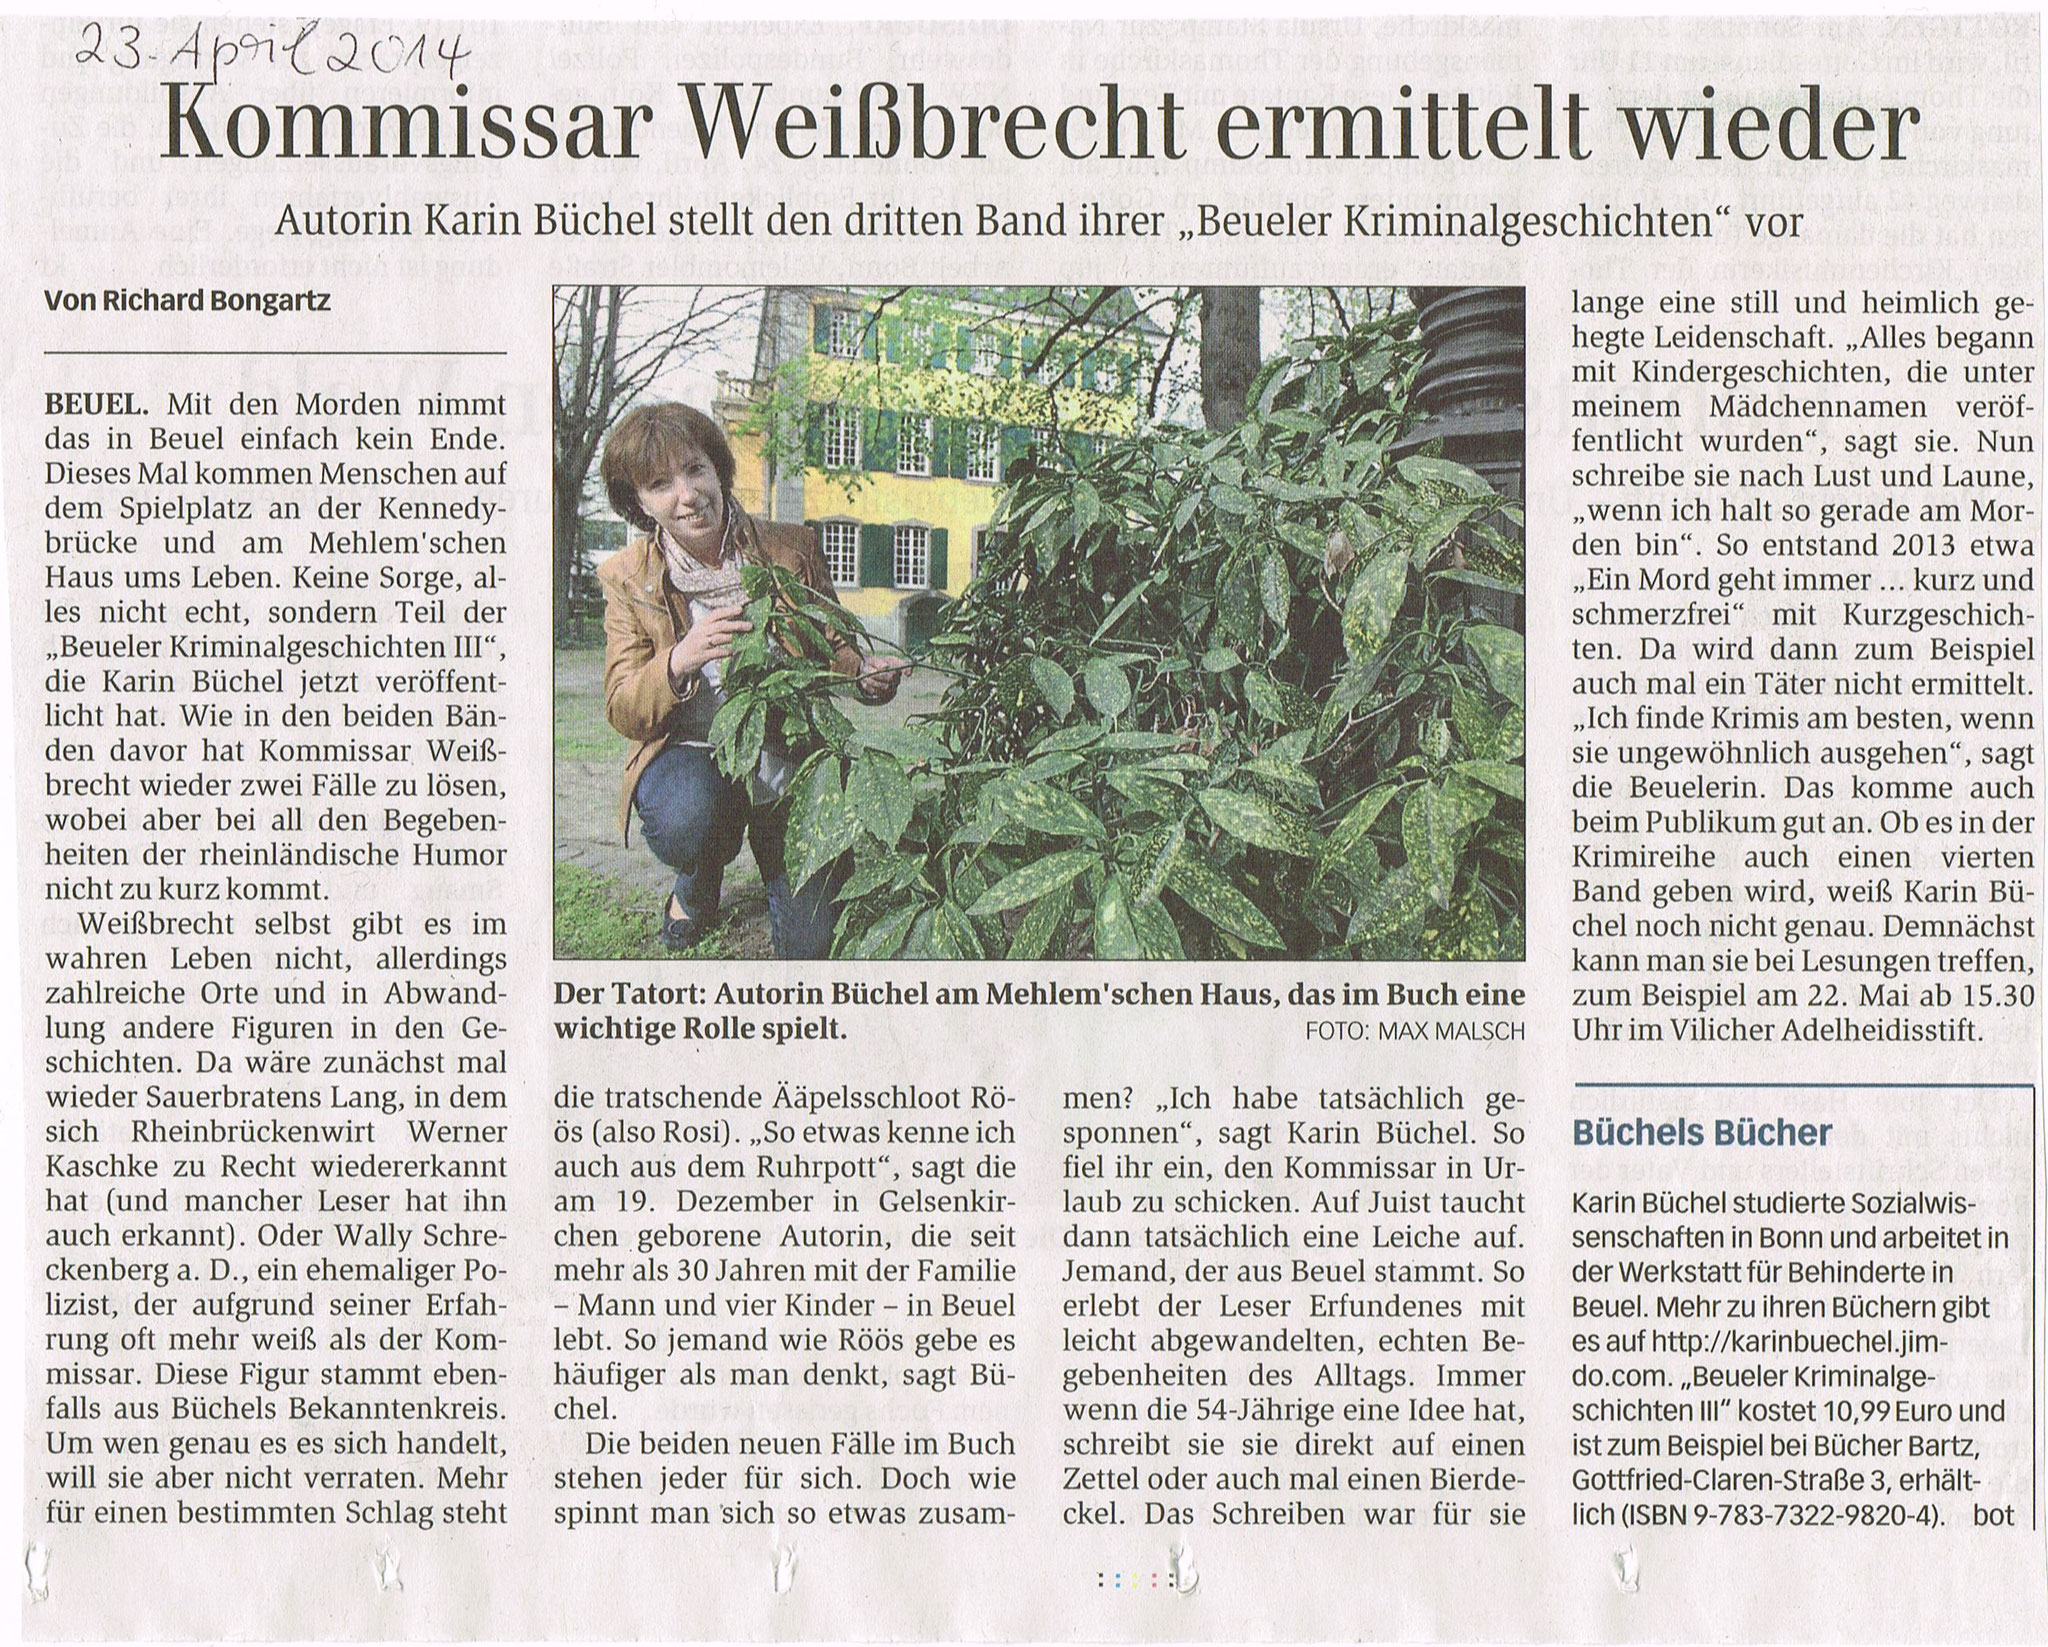 General-Anzeiger, 23. April 2014